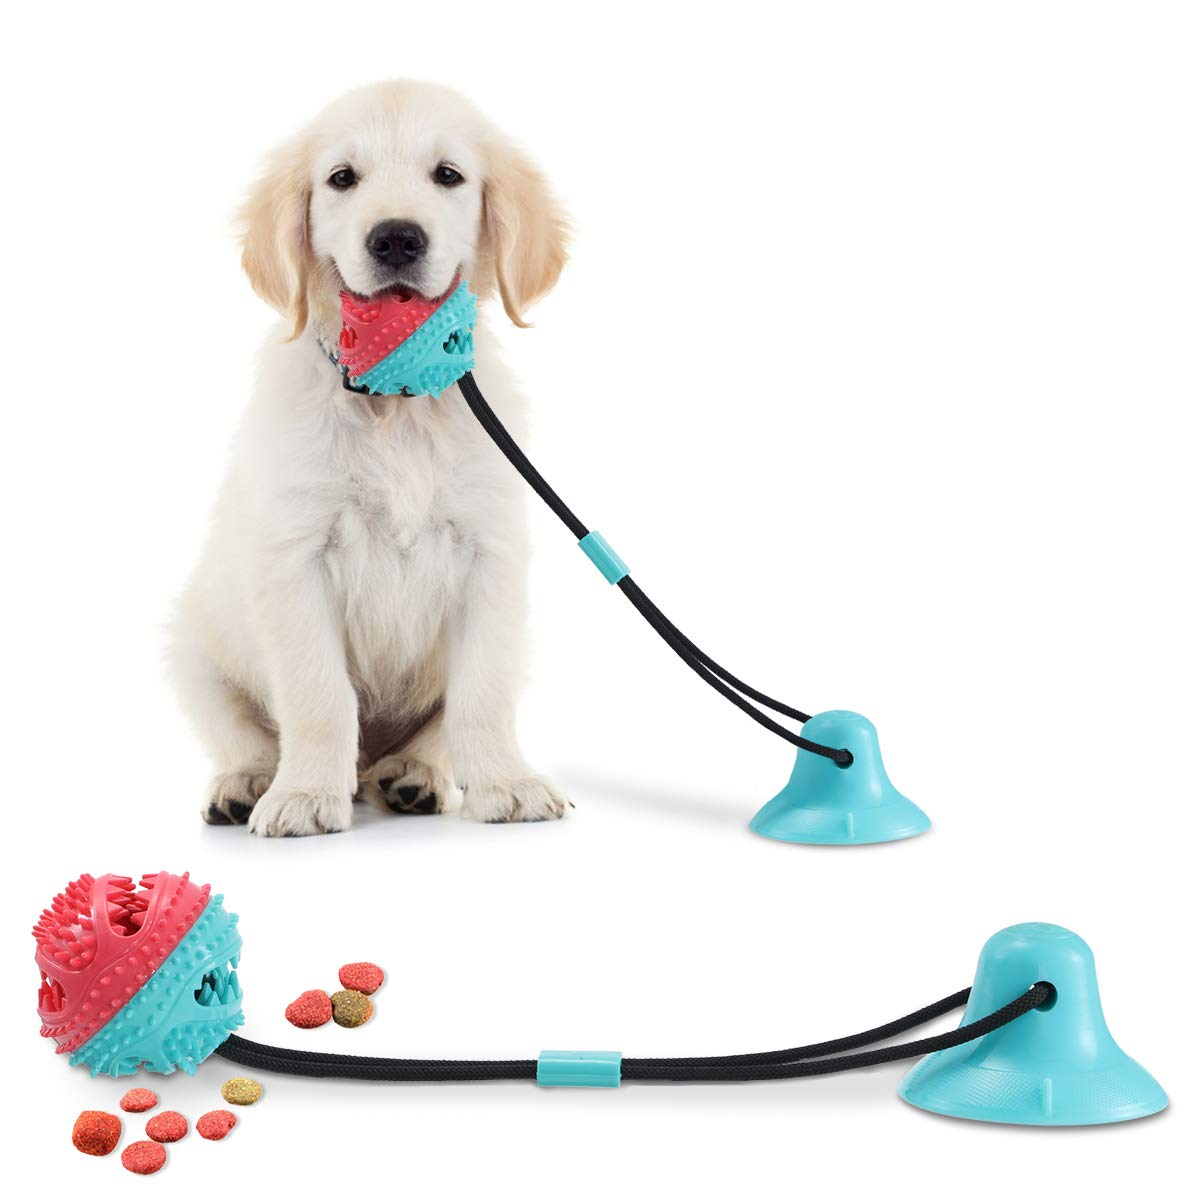 CAMTOA Dog Chew Toys for Aggressive Chewers, Suction Cup Dog Chewing Toy, Dog Rope Ball Toys with Suction Cup for Small Large Dogs, Puppy Dog Teeth Cleaning Interactive Pet Tug Toy for Boredom